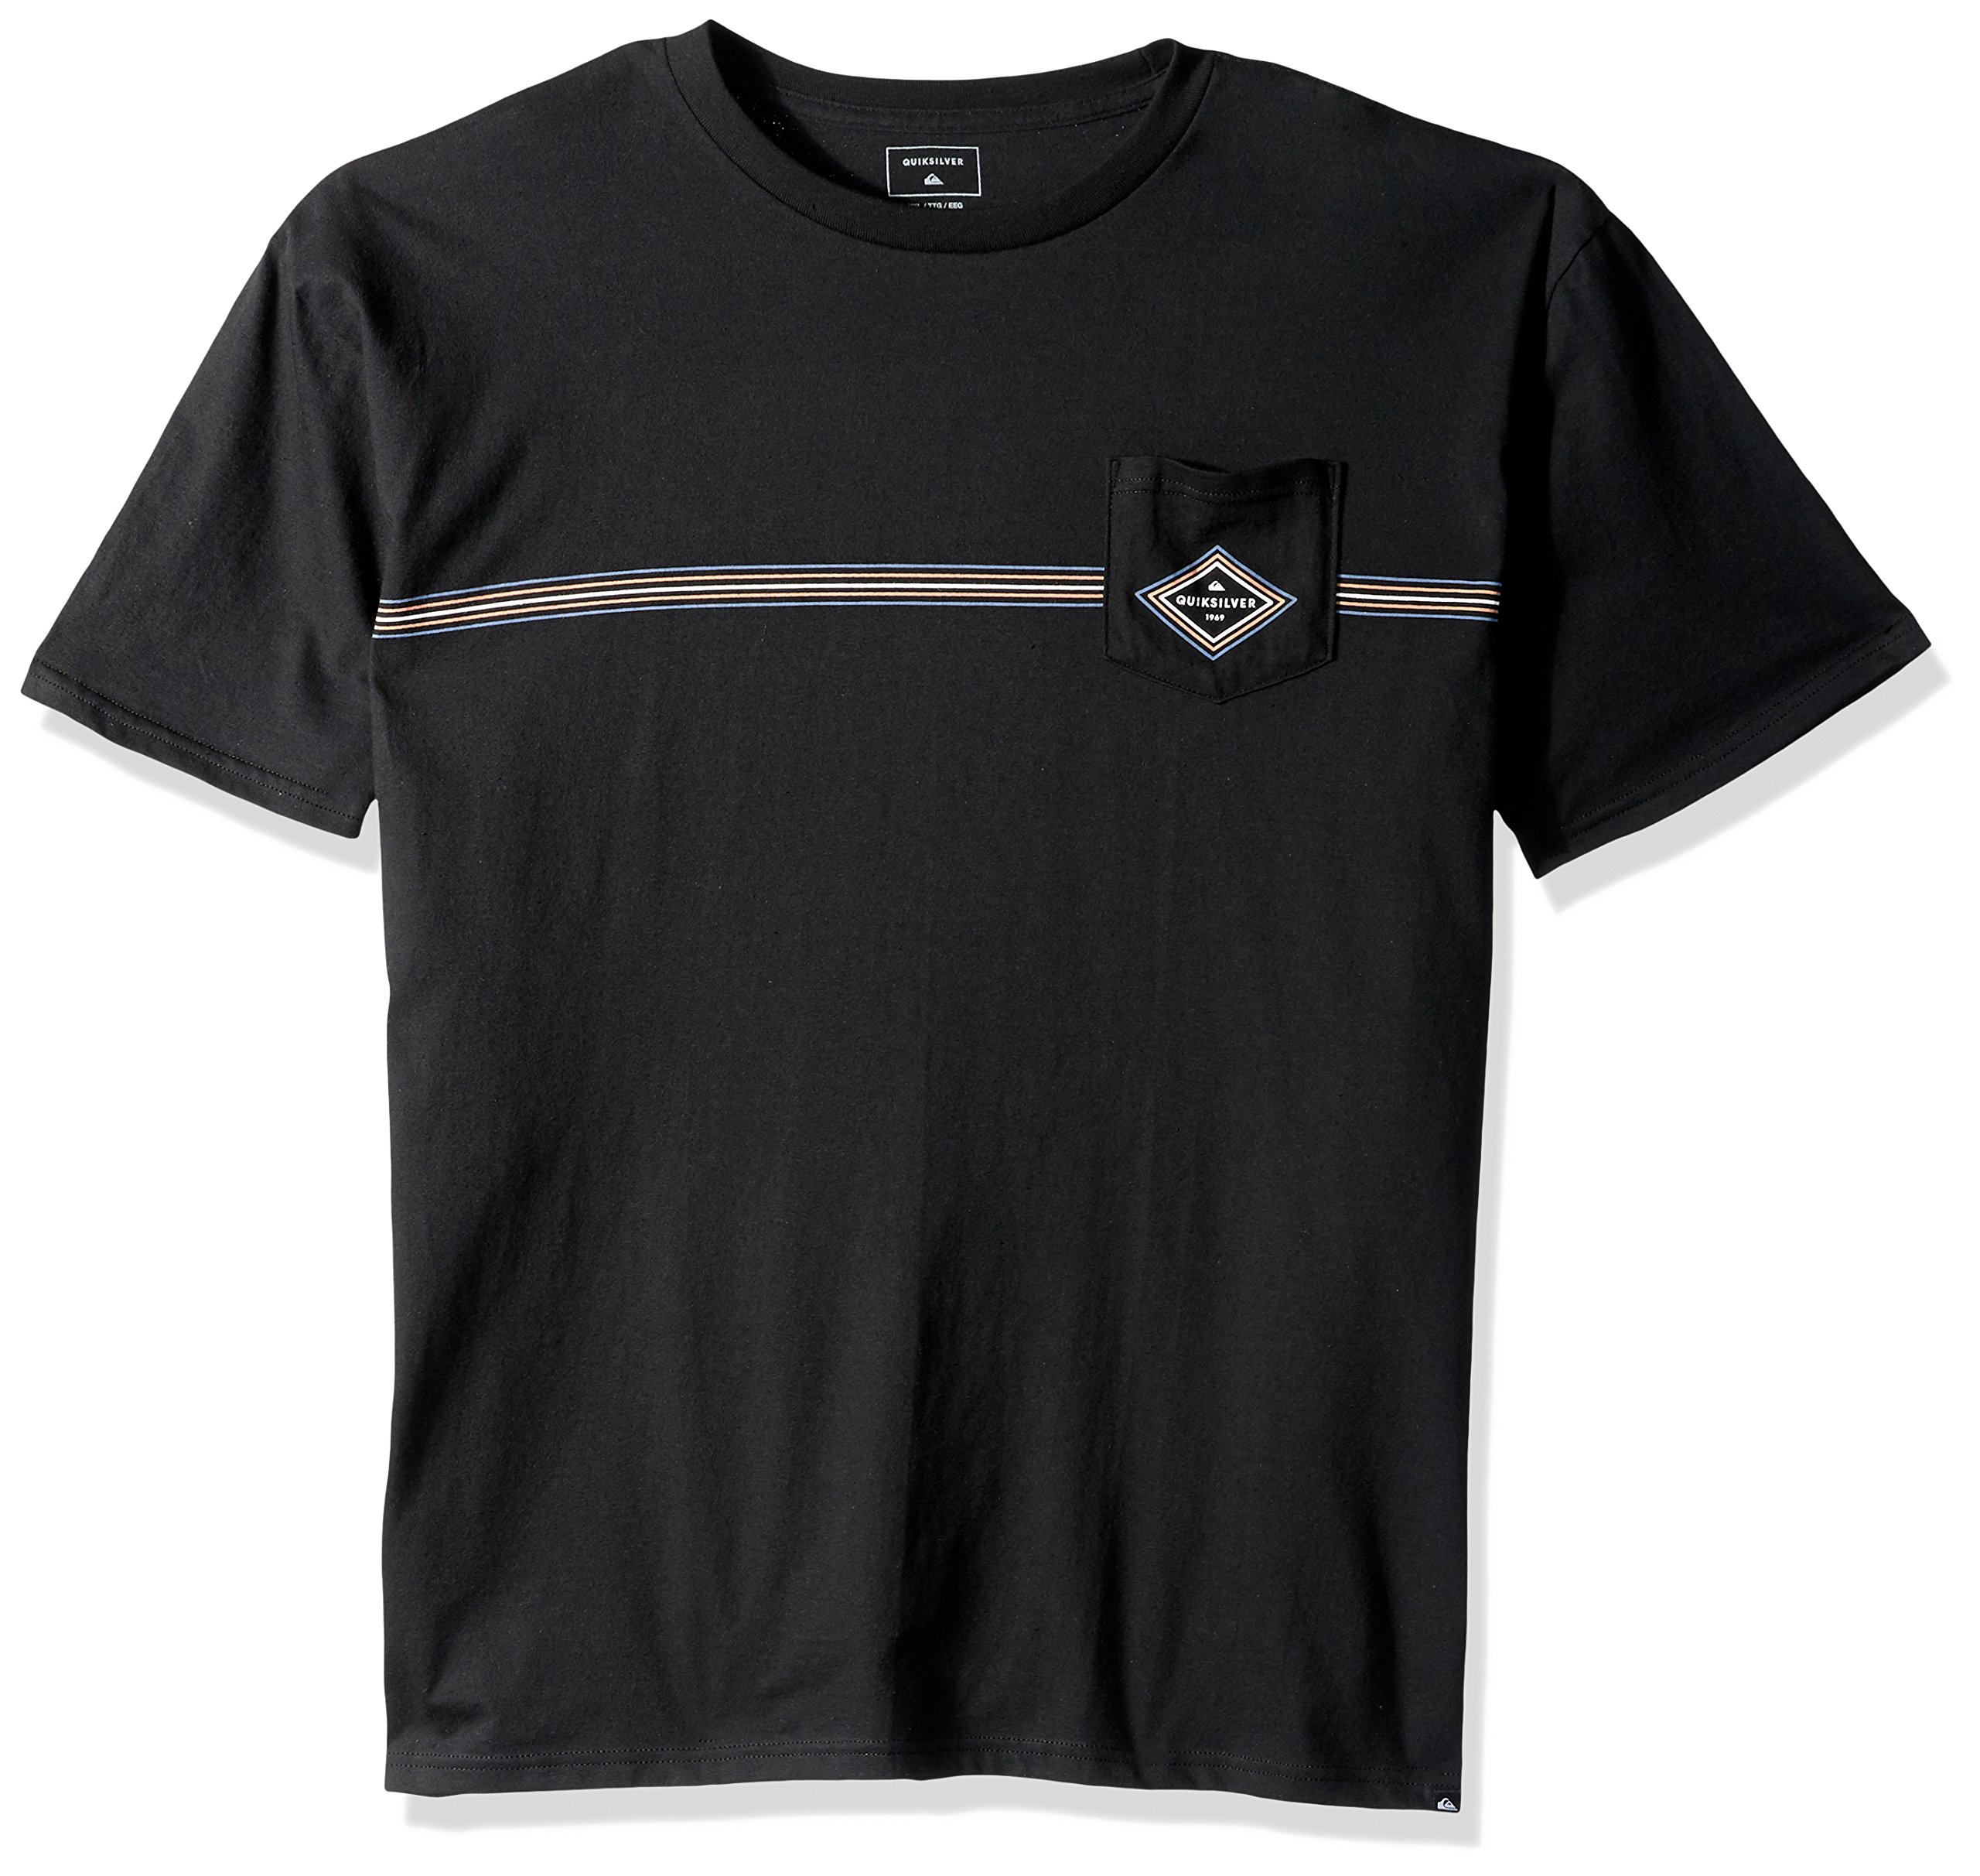 Quiksilver Men's Crosstown Tee Shirt, Black, XL